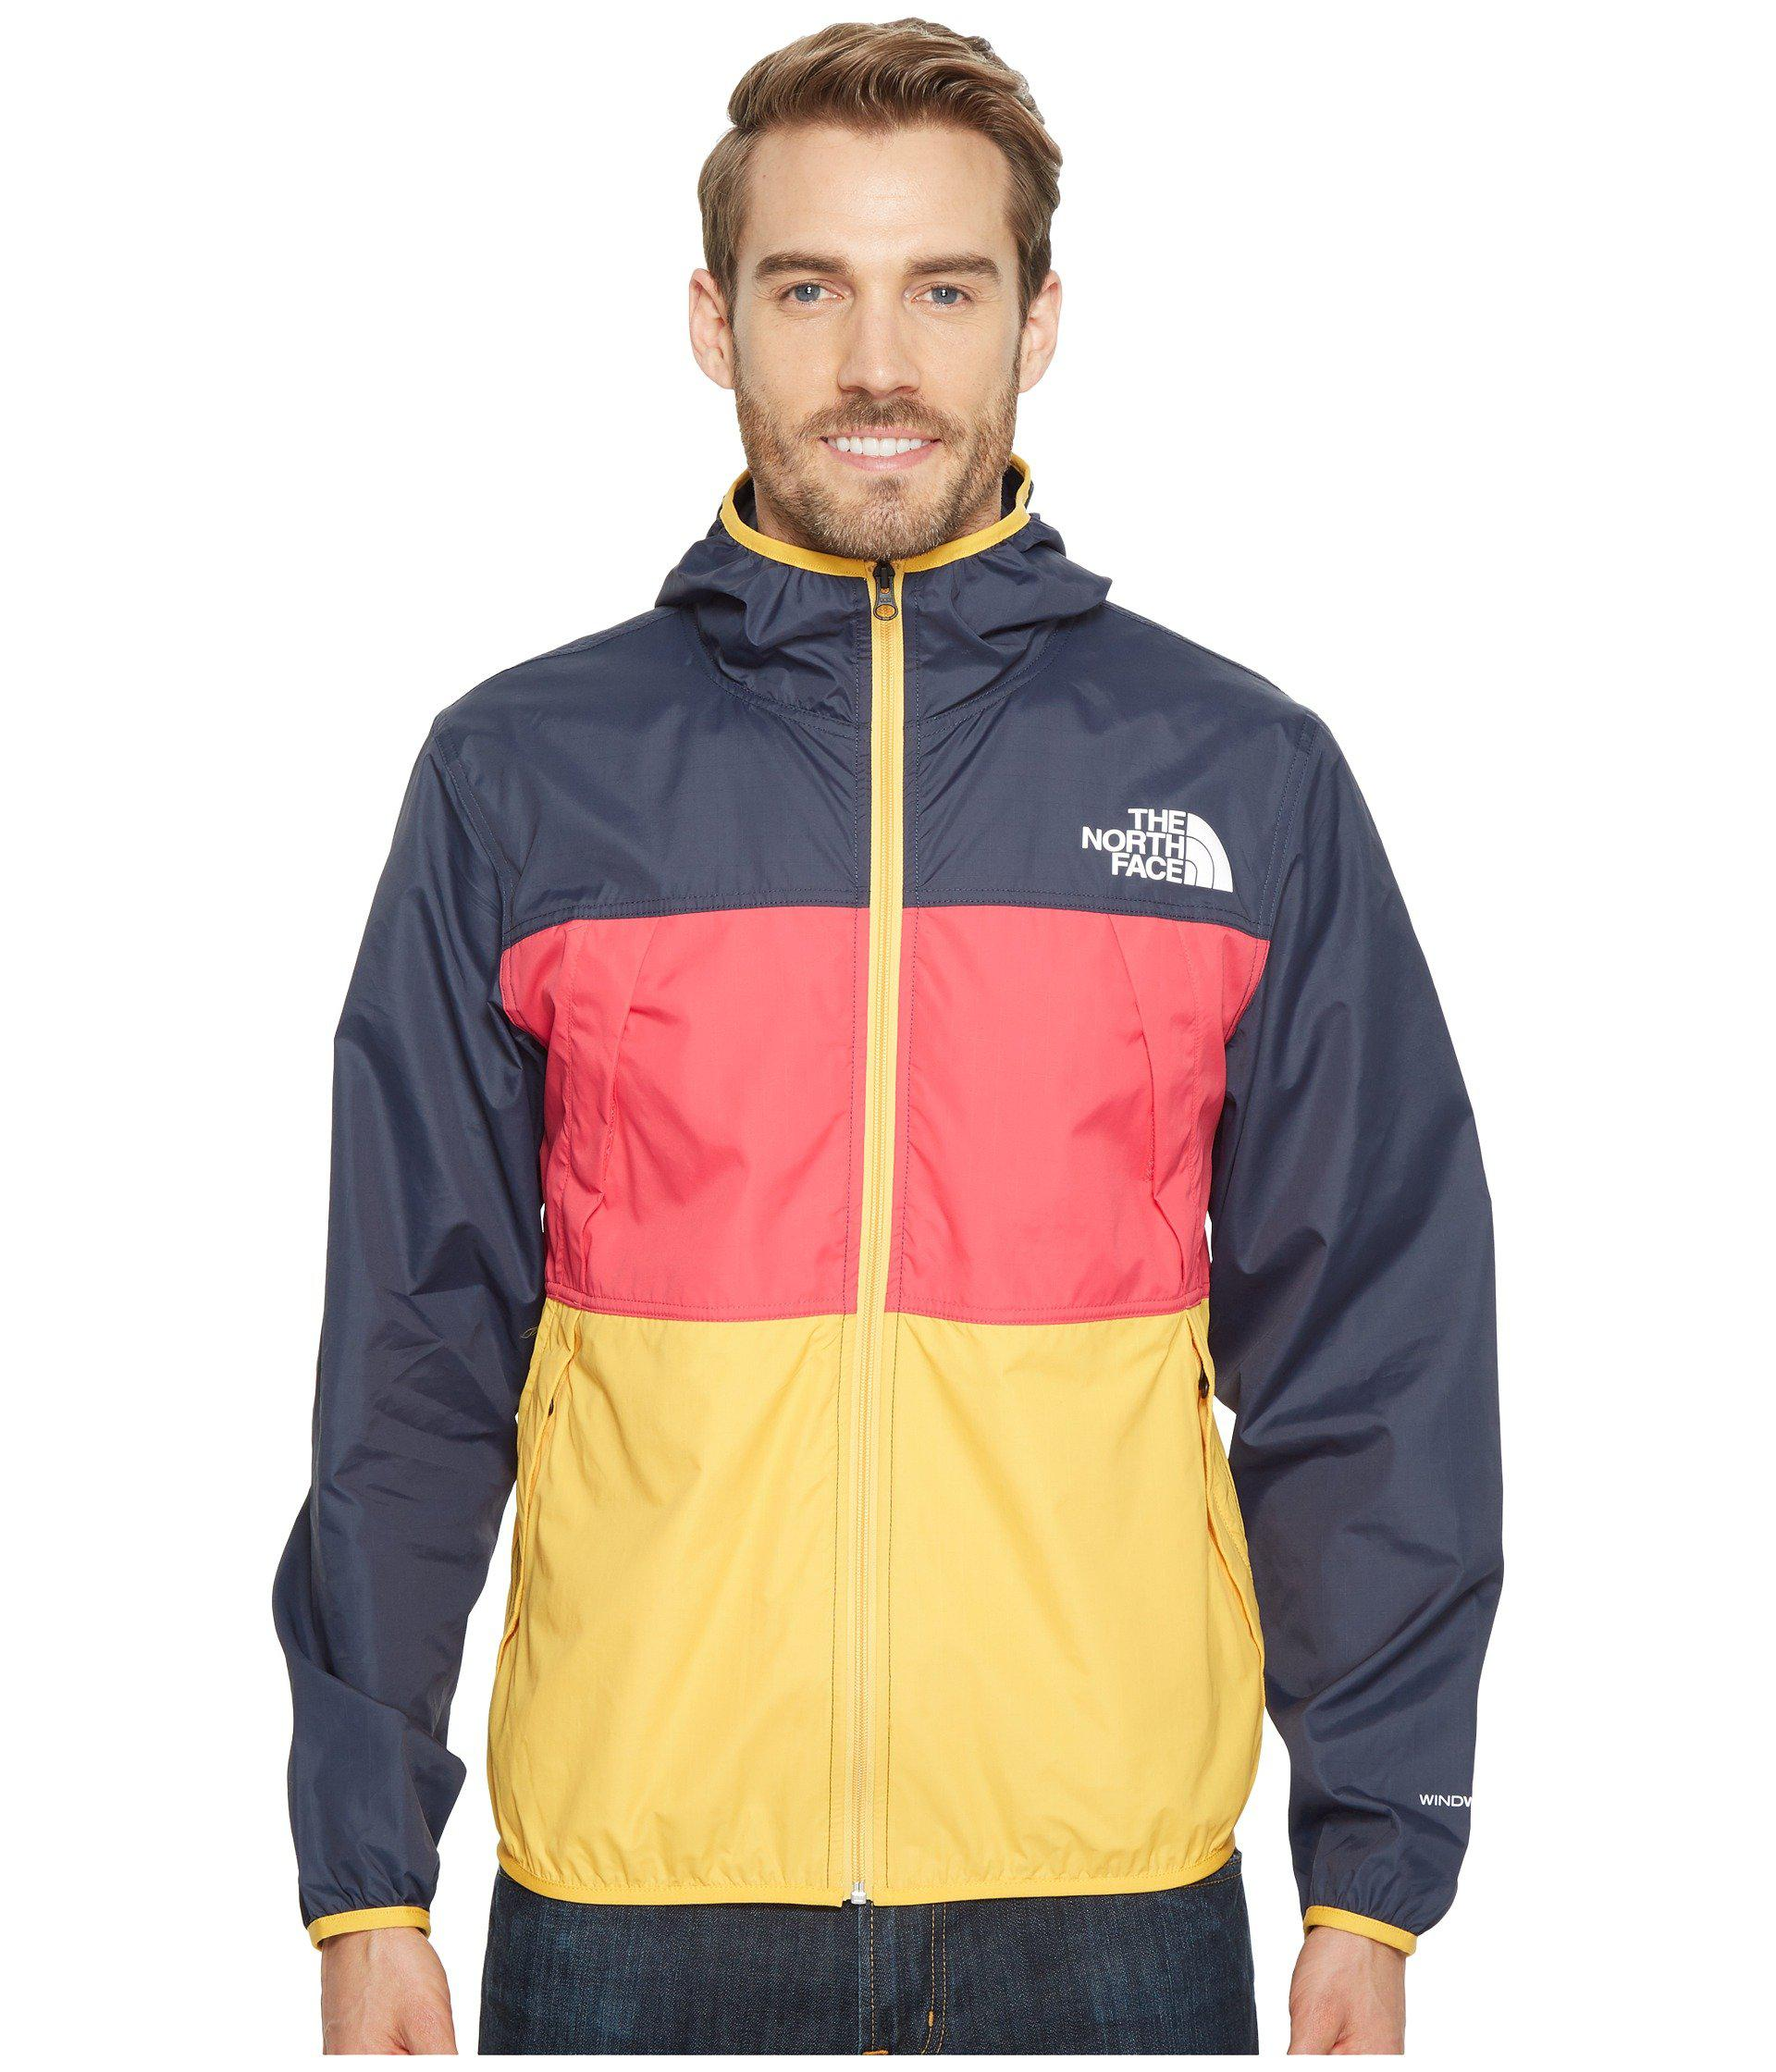 55bfb6b855c5 Lyst - The North Face Telegraph Wind Jacket (urban Navy raspberry ...